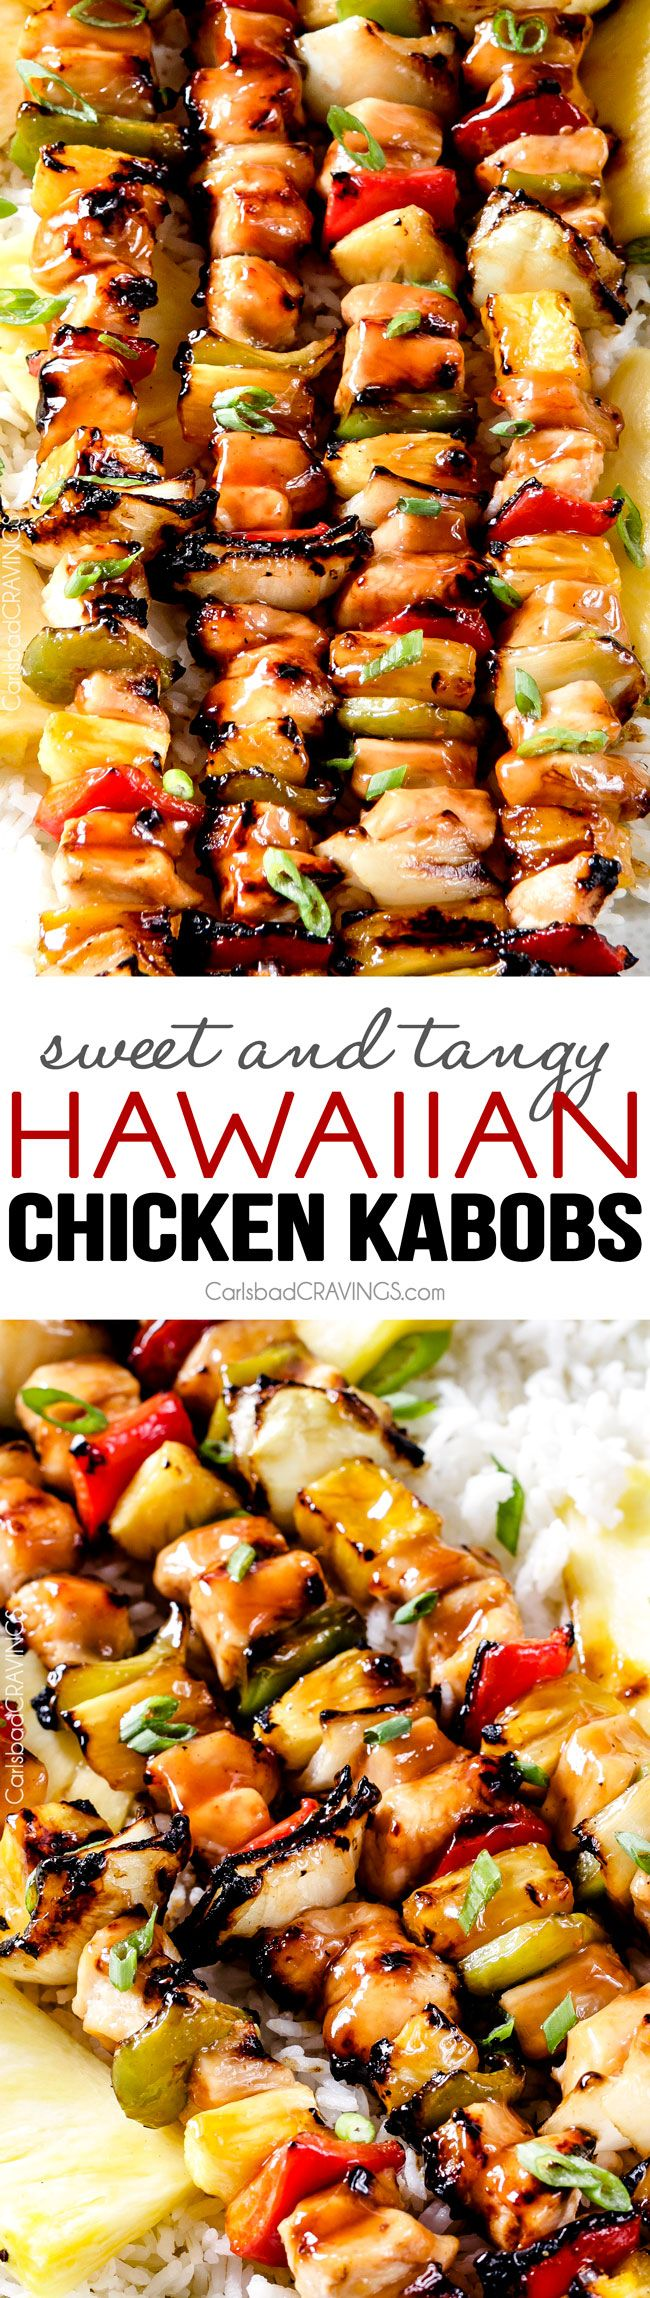 Grilled (or broiled) Hawaiian Chicken Kabobs - this is my new favorite grill recipe! the chicken is so juicy and flavorful and the sweet and tangy Hawaiian Sauce (that doubles as a marinade) is out of this world!: